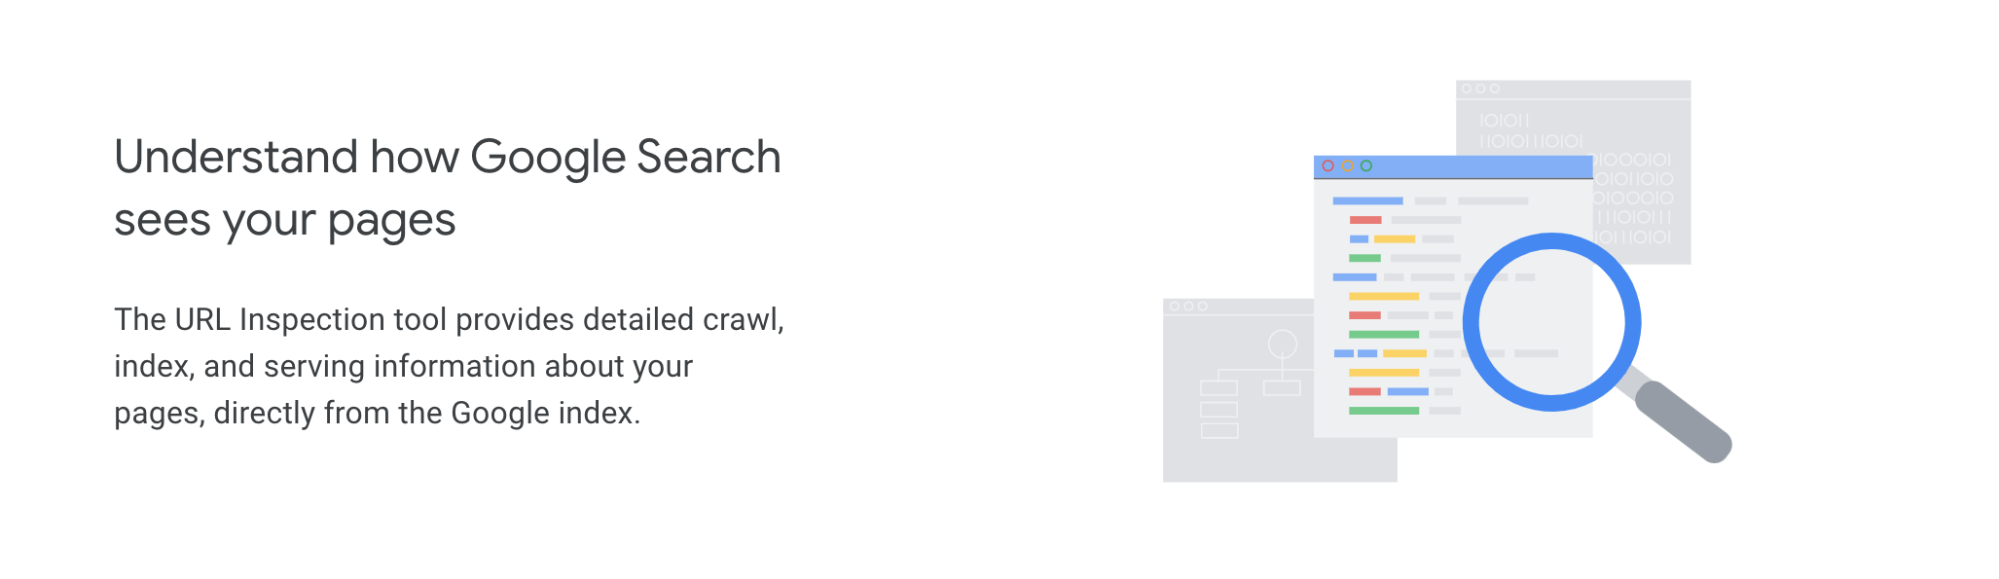 understand how google search sees your pages